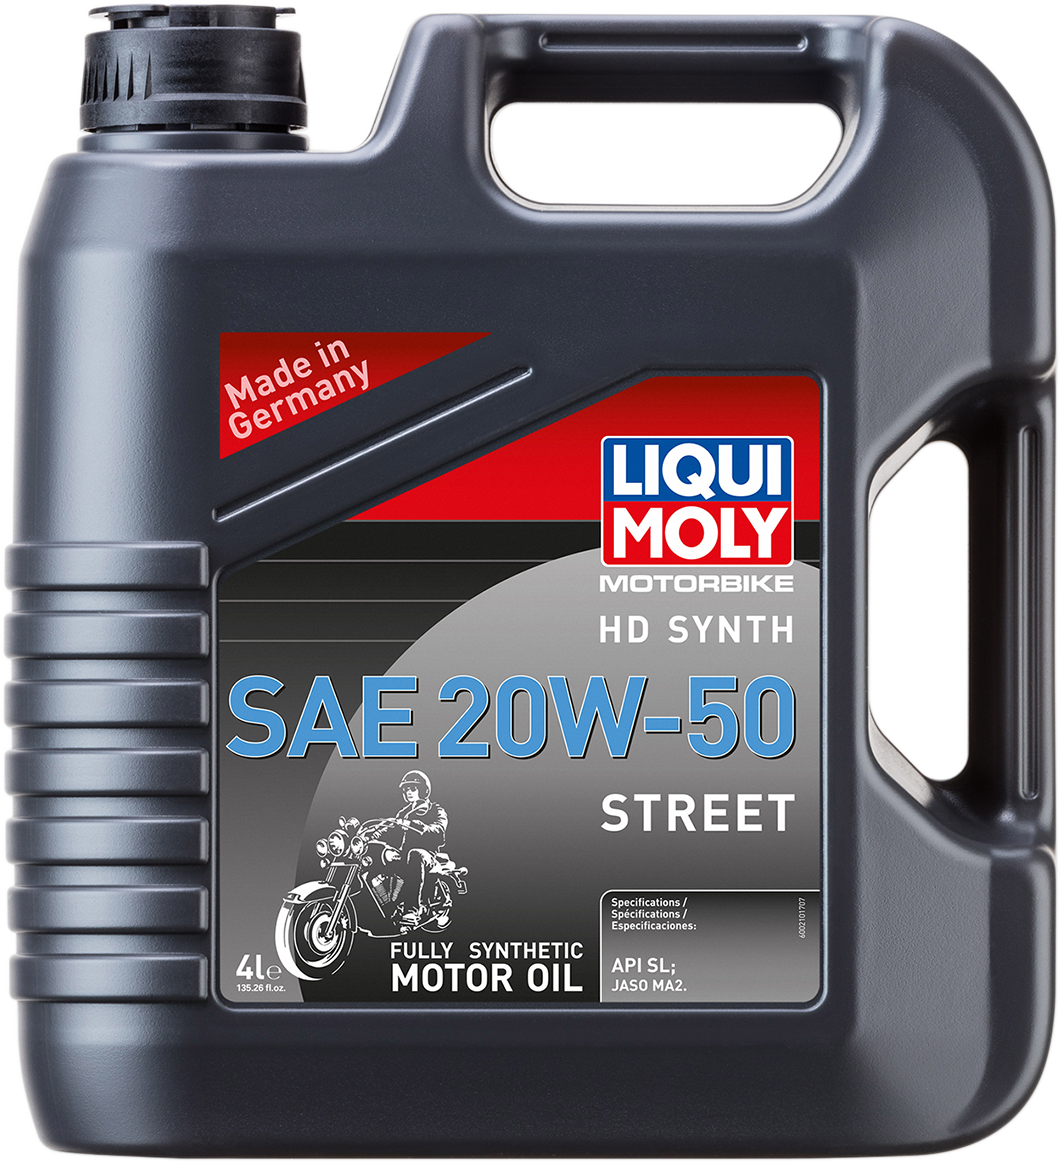 Liqui Moly 4 Liter 20W-50 Fully Synthetic Motorcycle Engine Oil for Harley HD